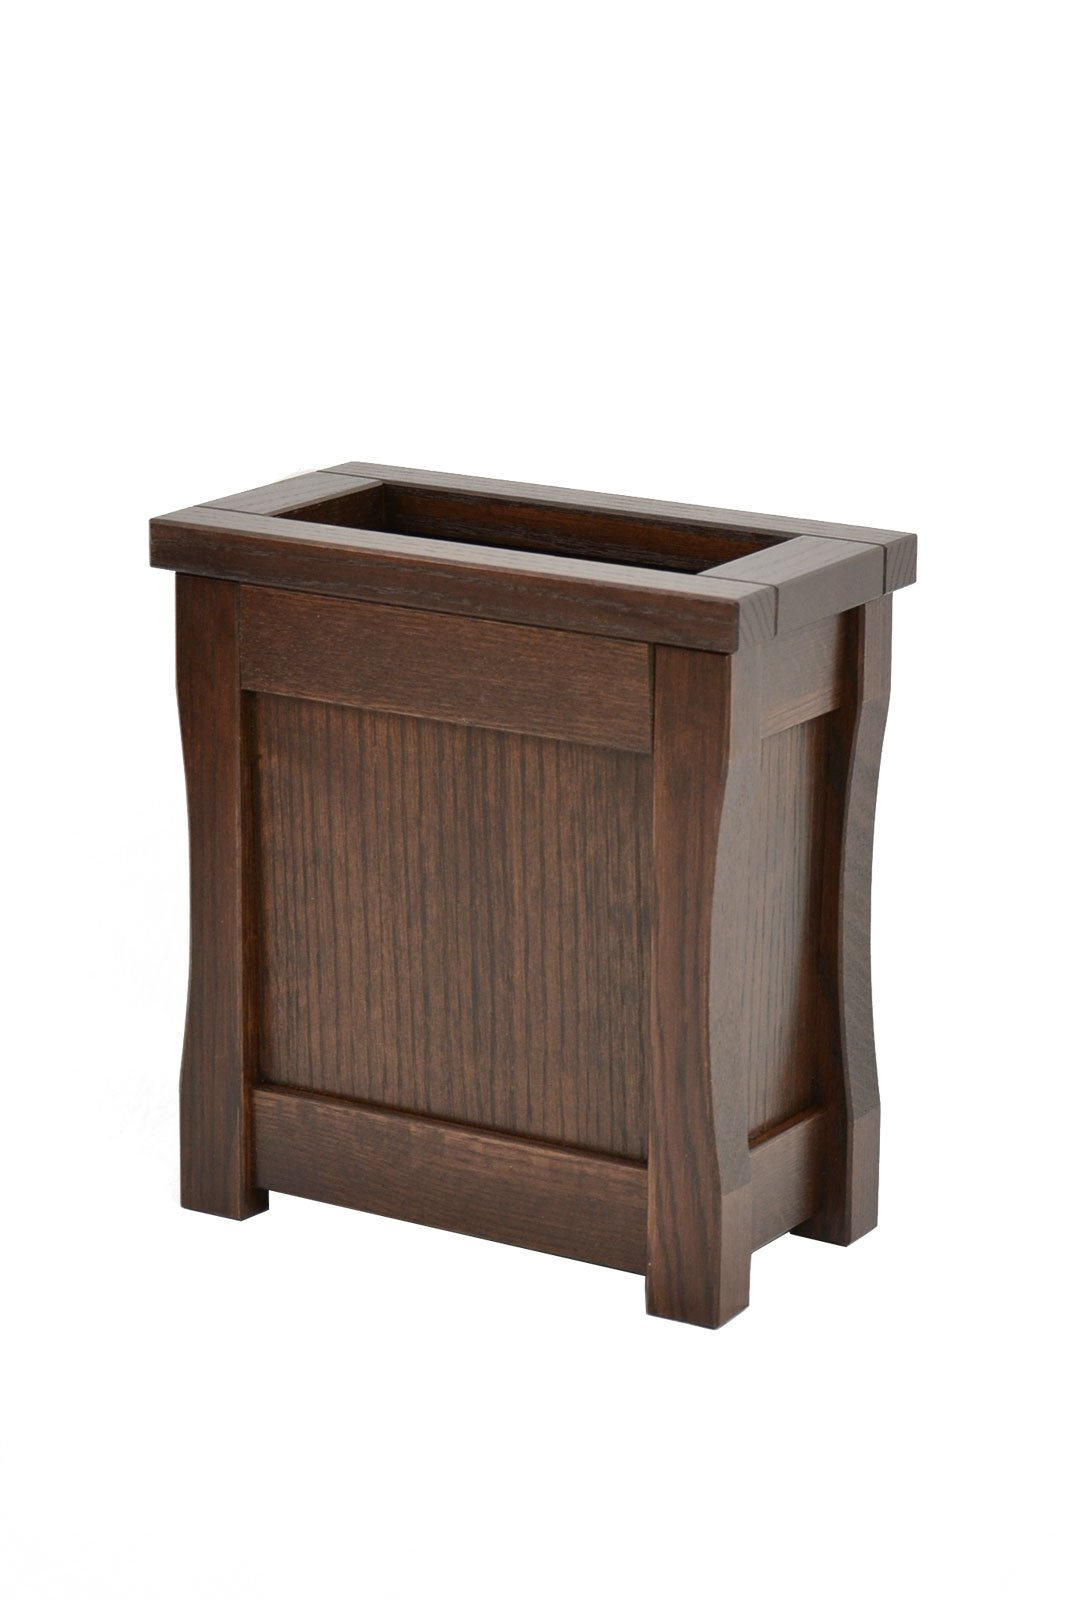 Small wooden trash can. Mission style. Oak. CQ-2-75